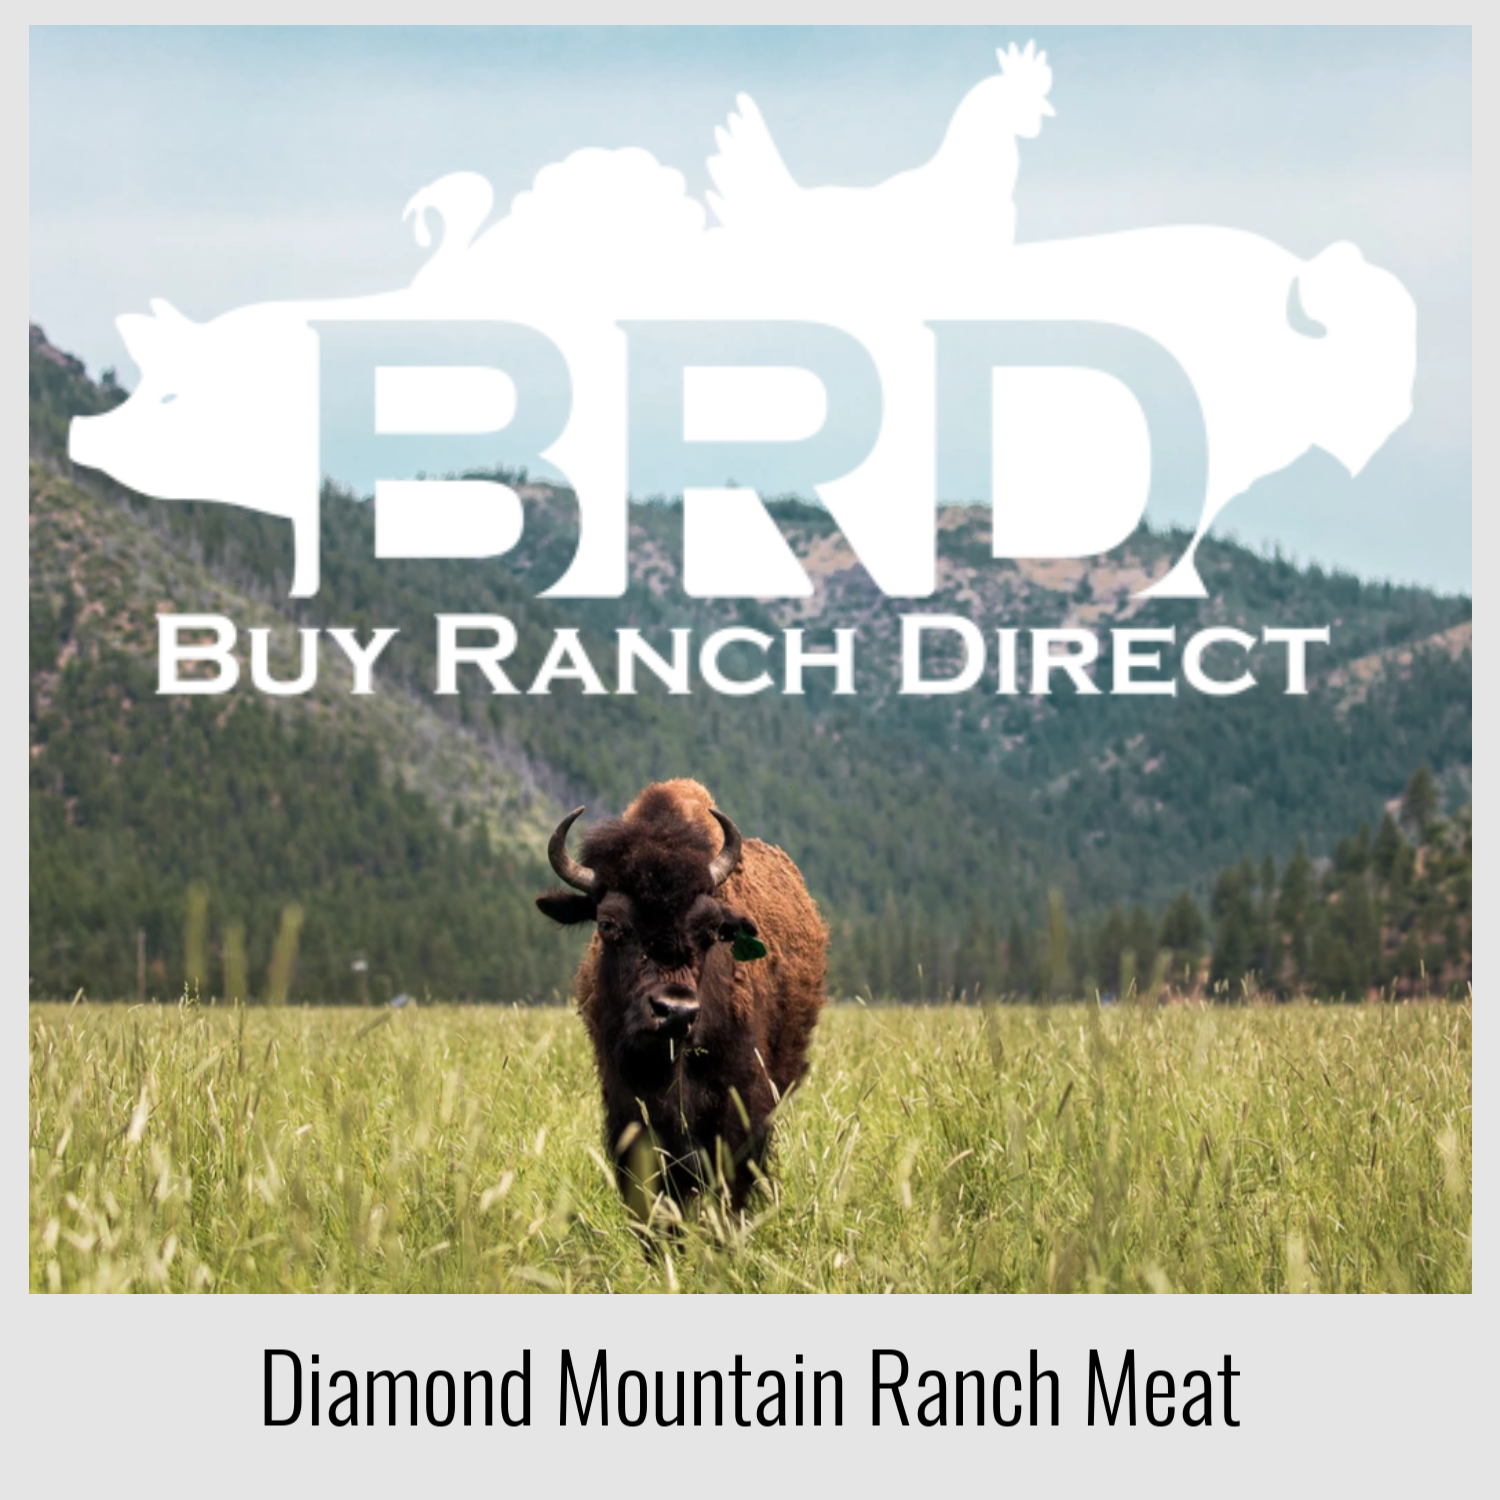 buy ranch direct.png